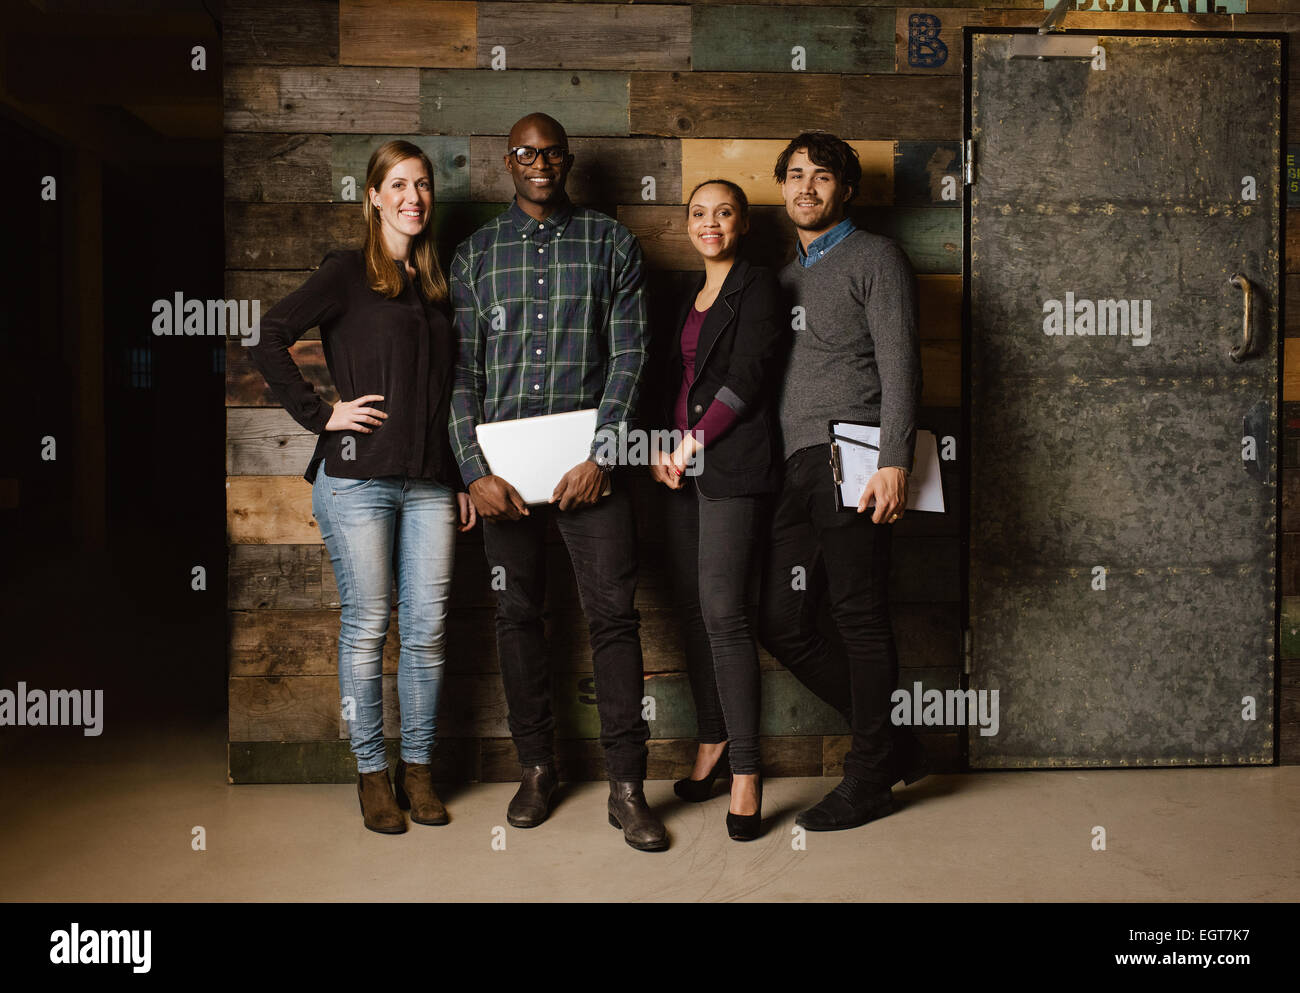 Full length portrait of successful business team standing in an office. Multiracial business professional posing - Stock Image